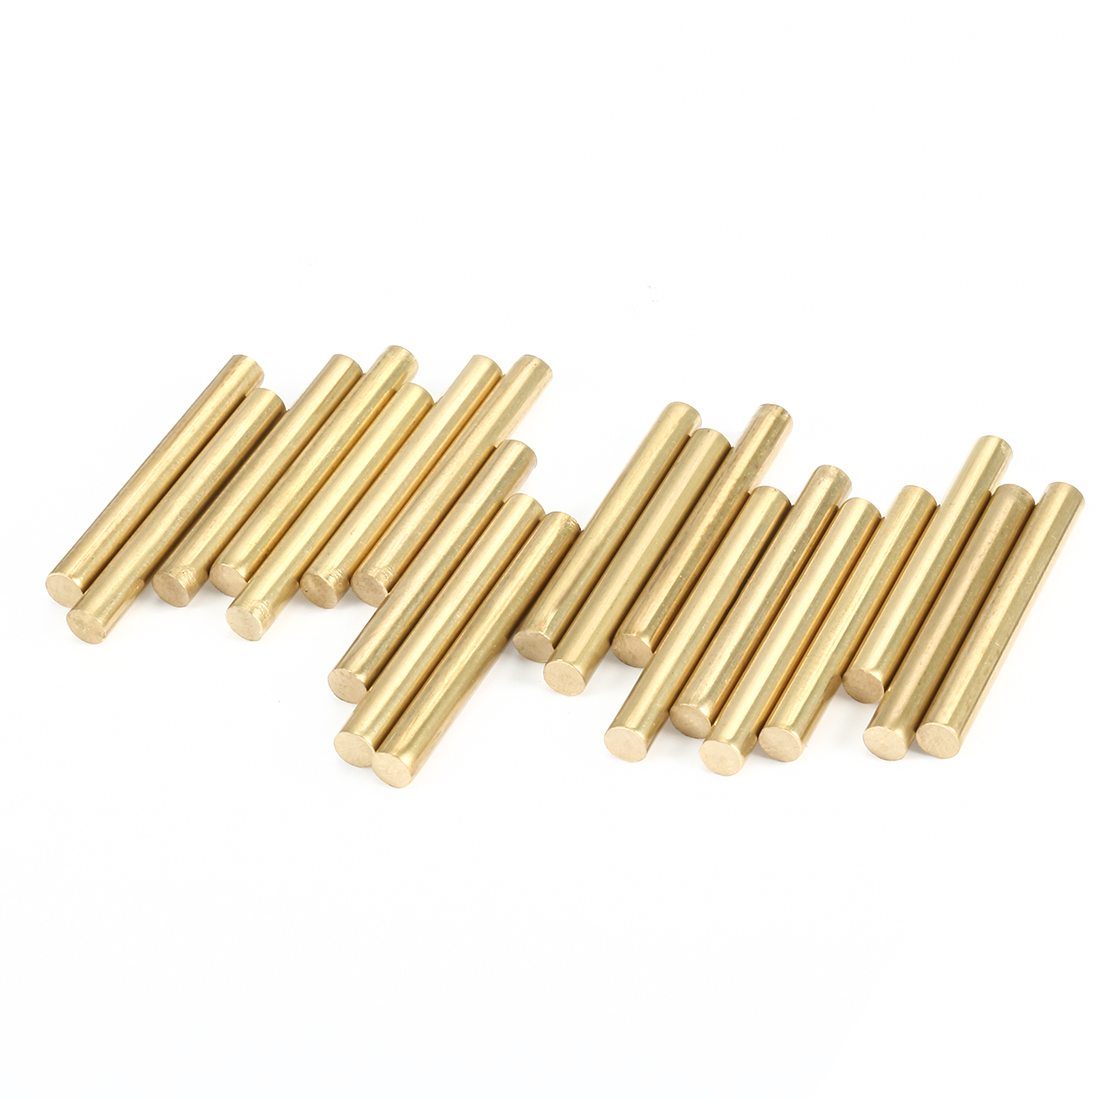 20pcs Brass Round Shaft Rods Axles 3mm x 25mm for RC Toy Car